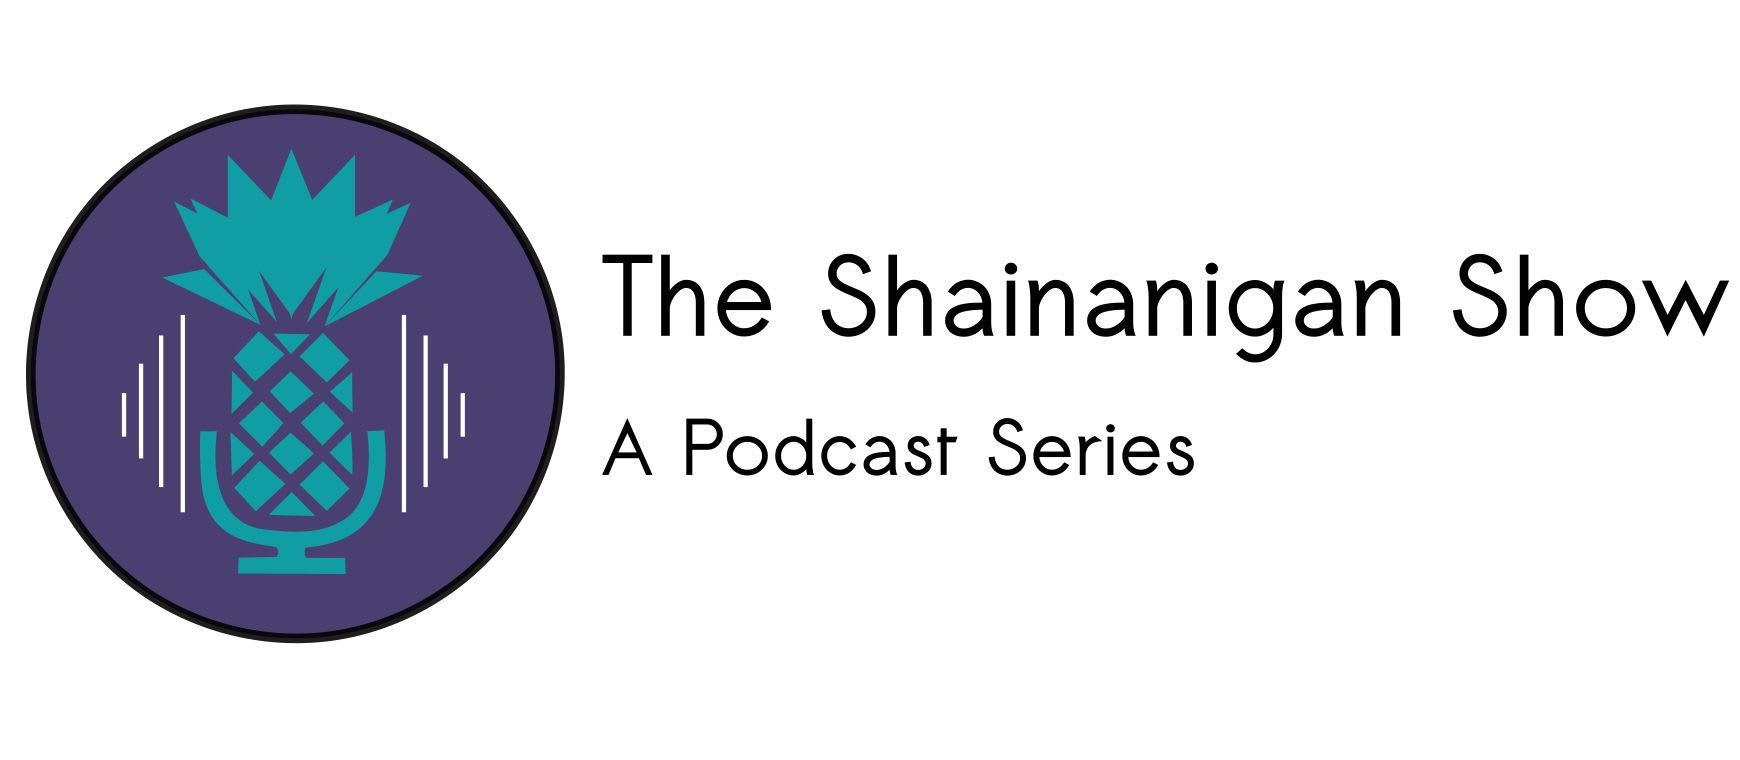 Launching, The Shainanigan Show!